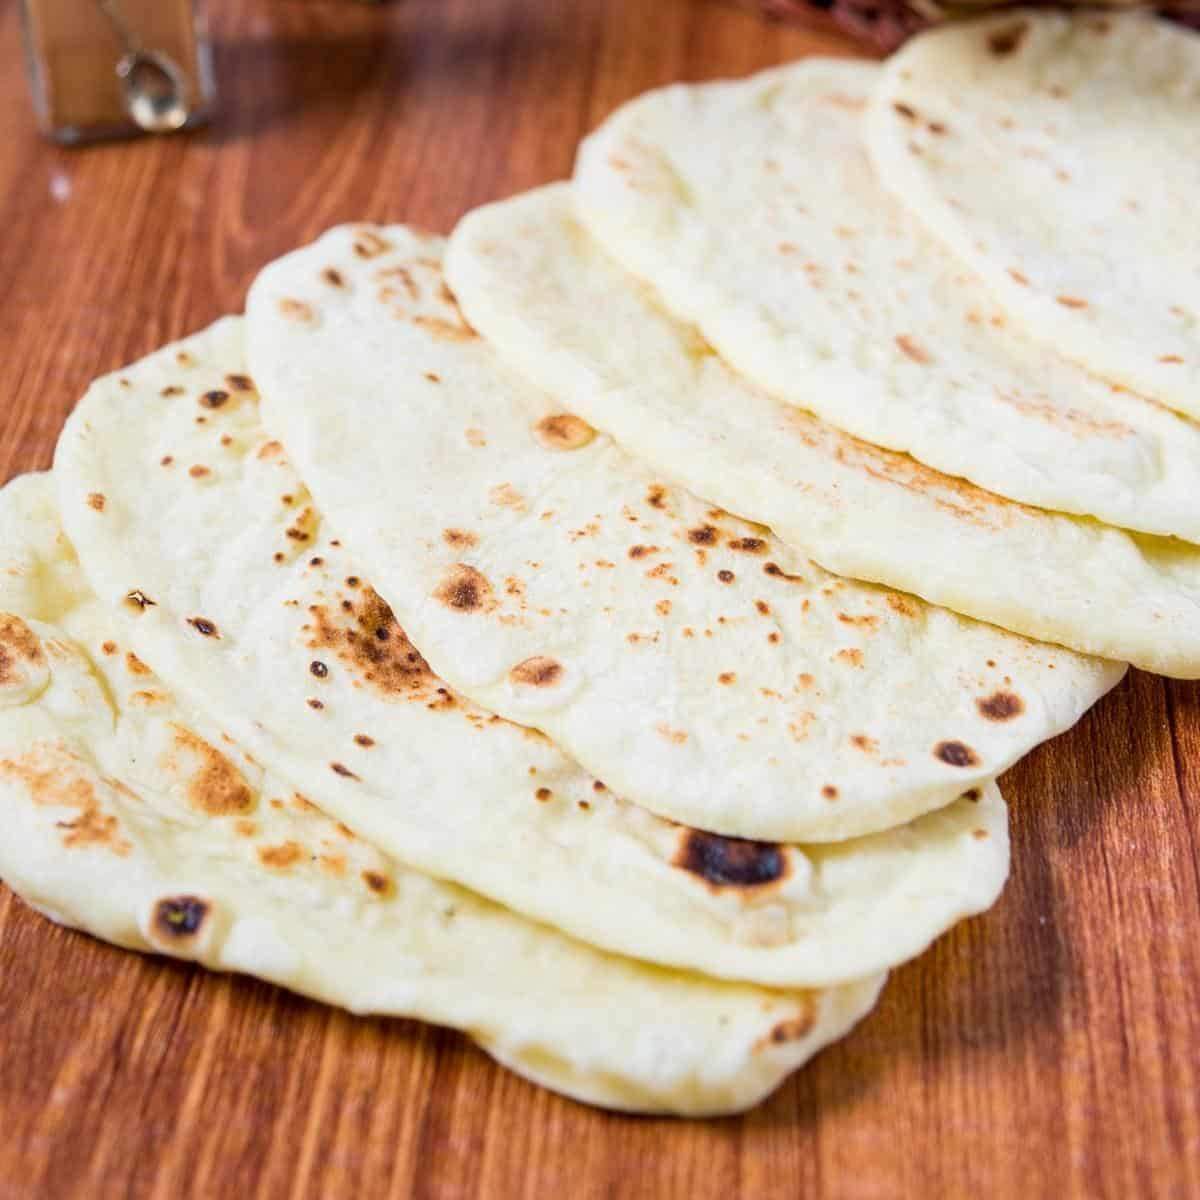 A stack of Indian naan on a table.